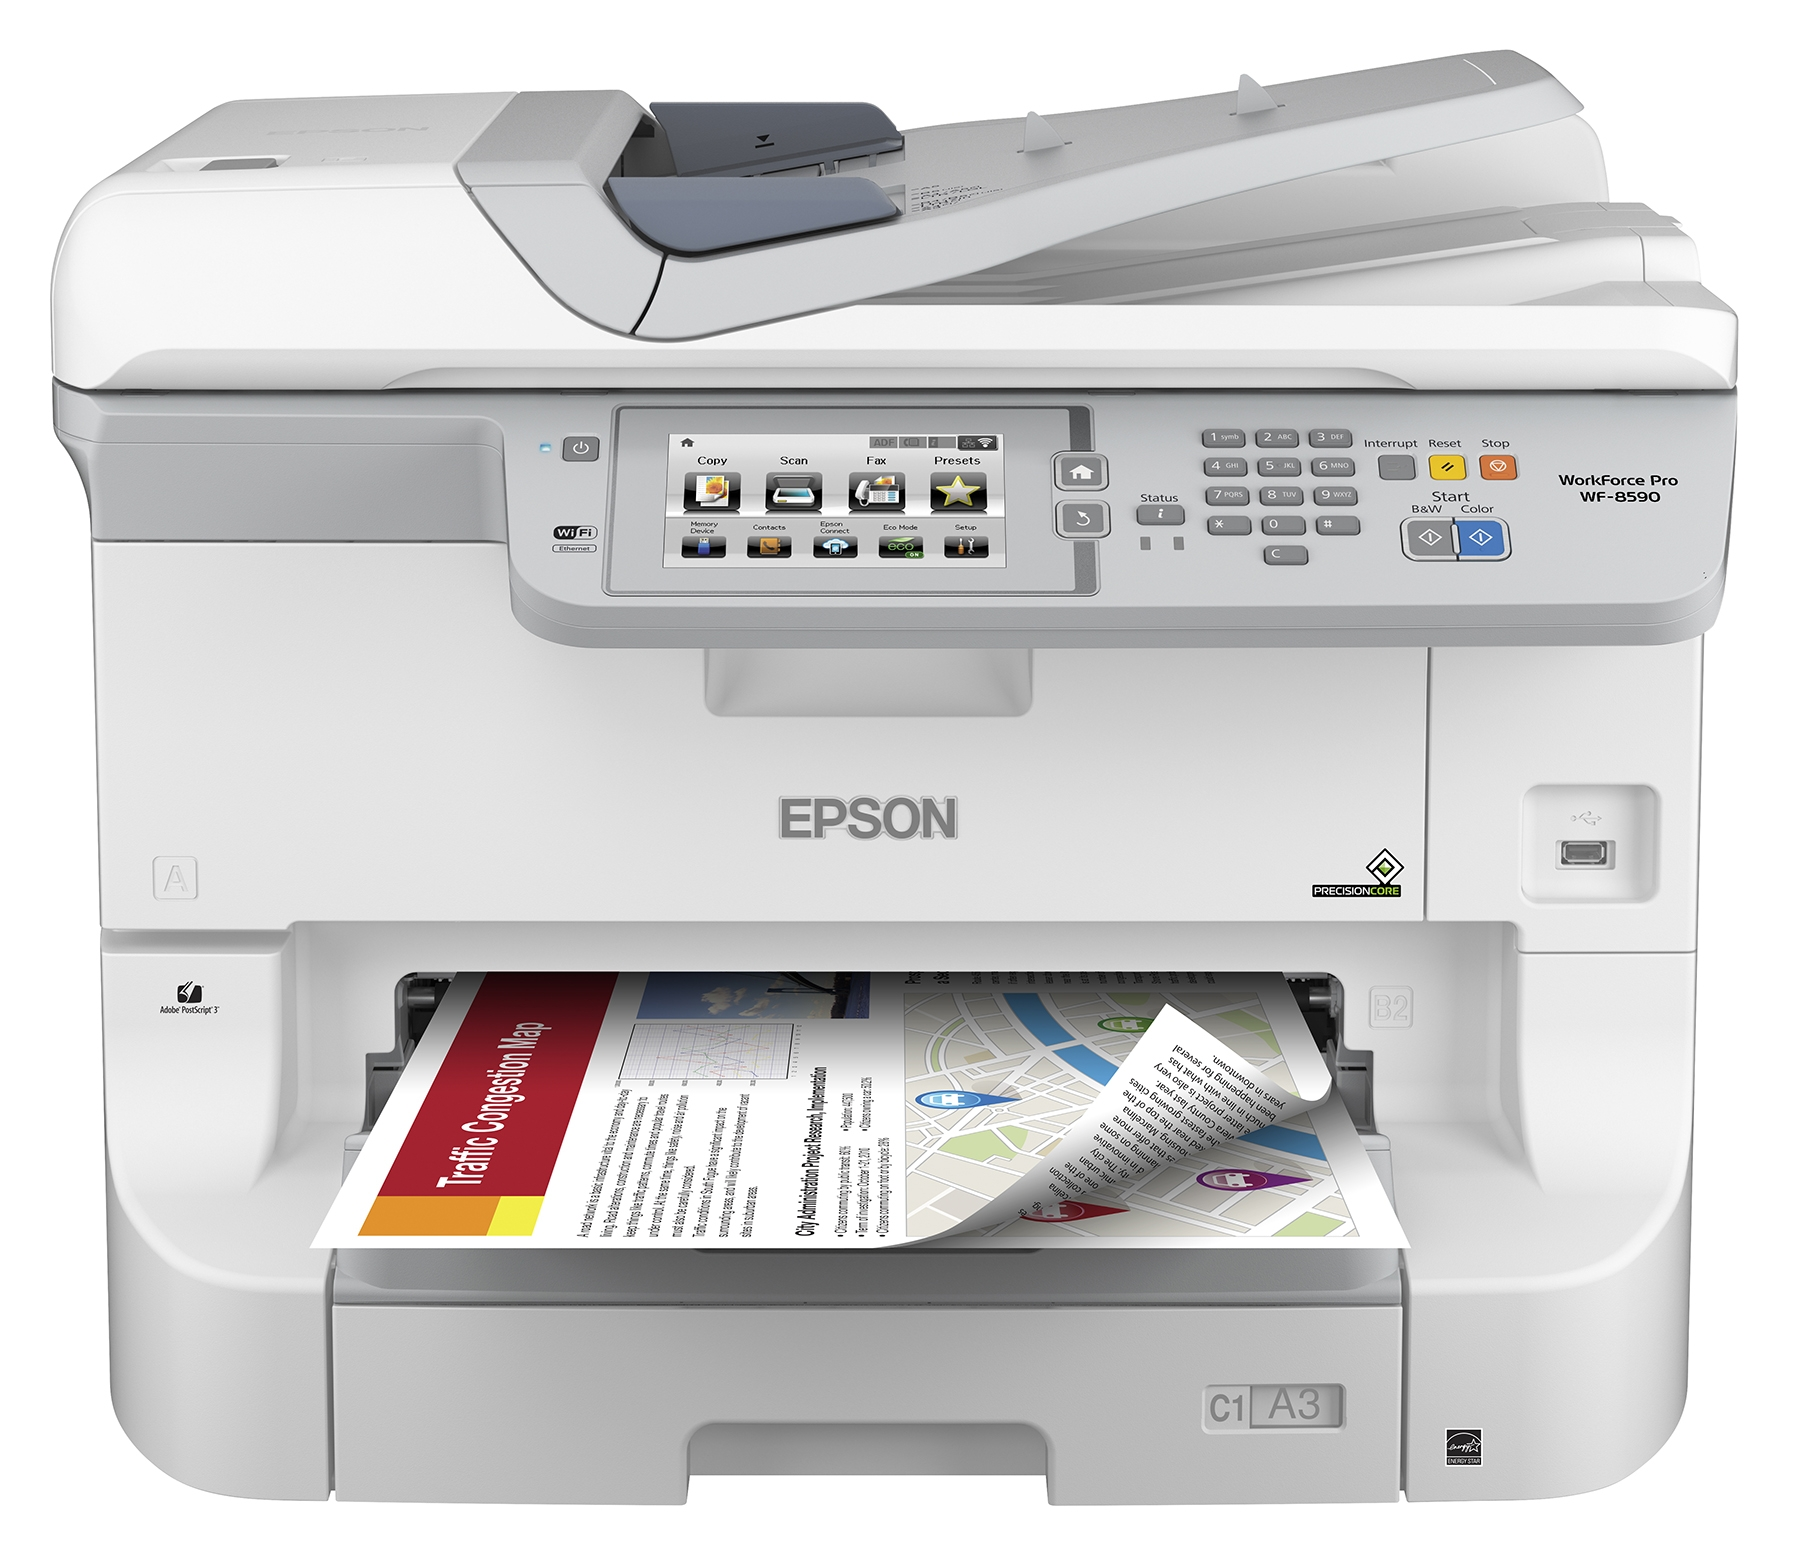 A3 Photo Printing Epson Introduces Heavy Duty A3 Color Workgroup Printer And Mfp